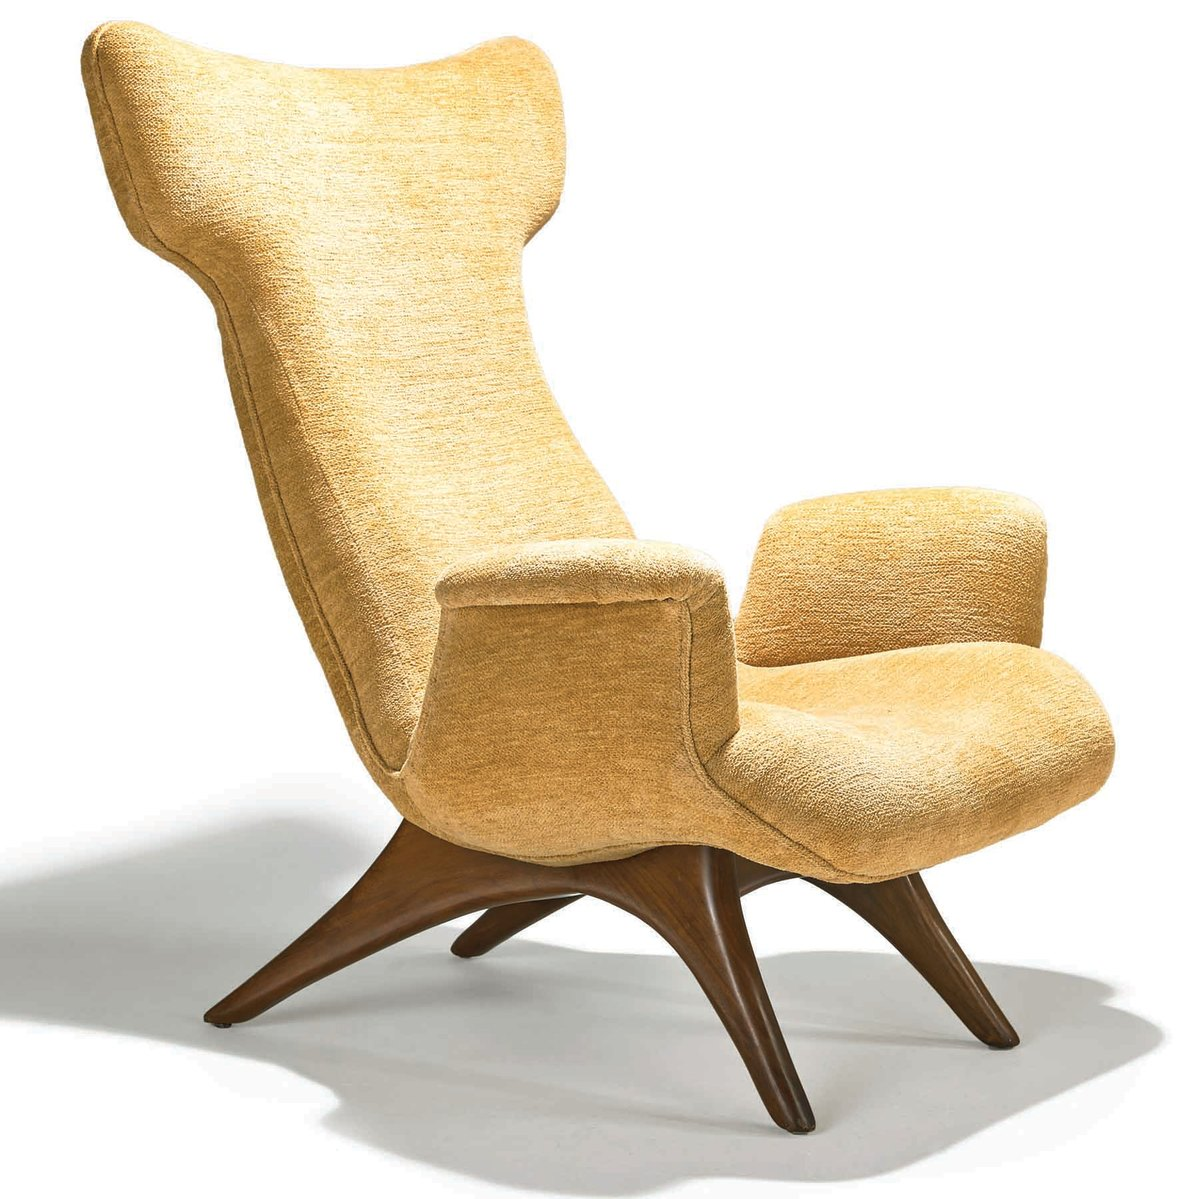 A wing lounge chair designed and manufactured by Vladimir Kagan.